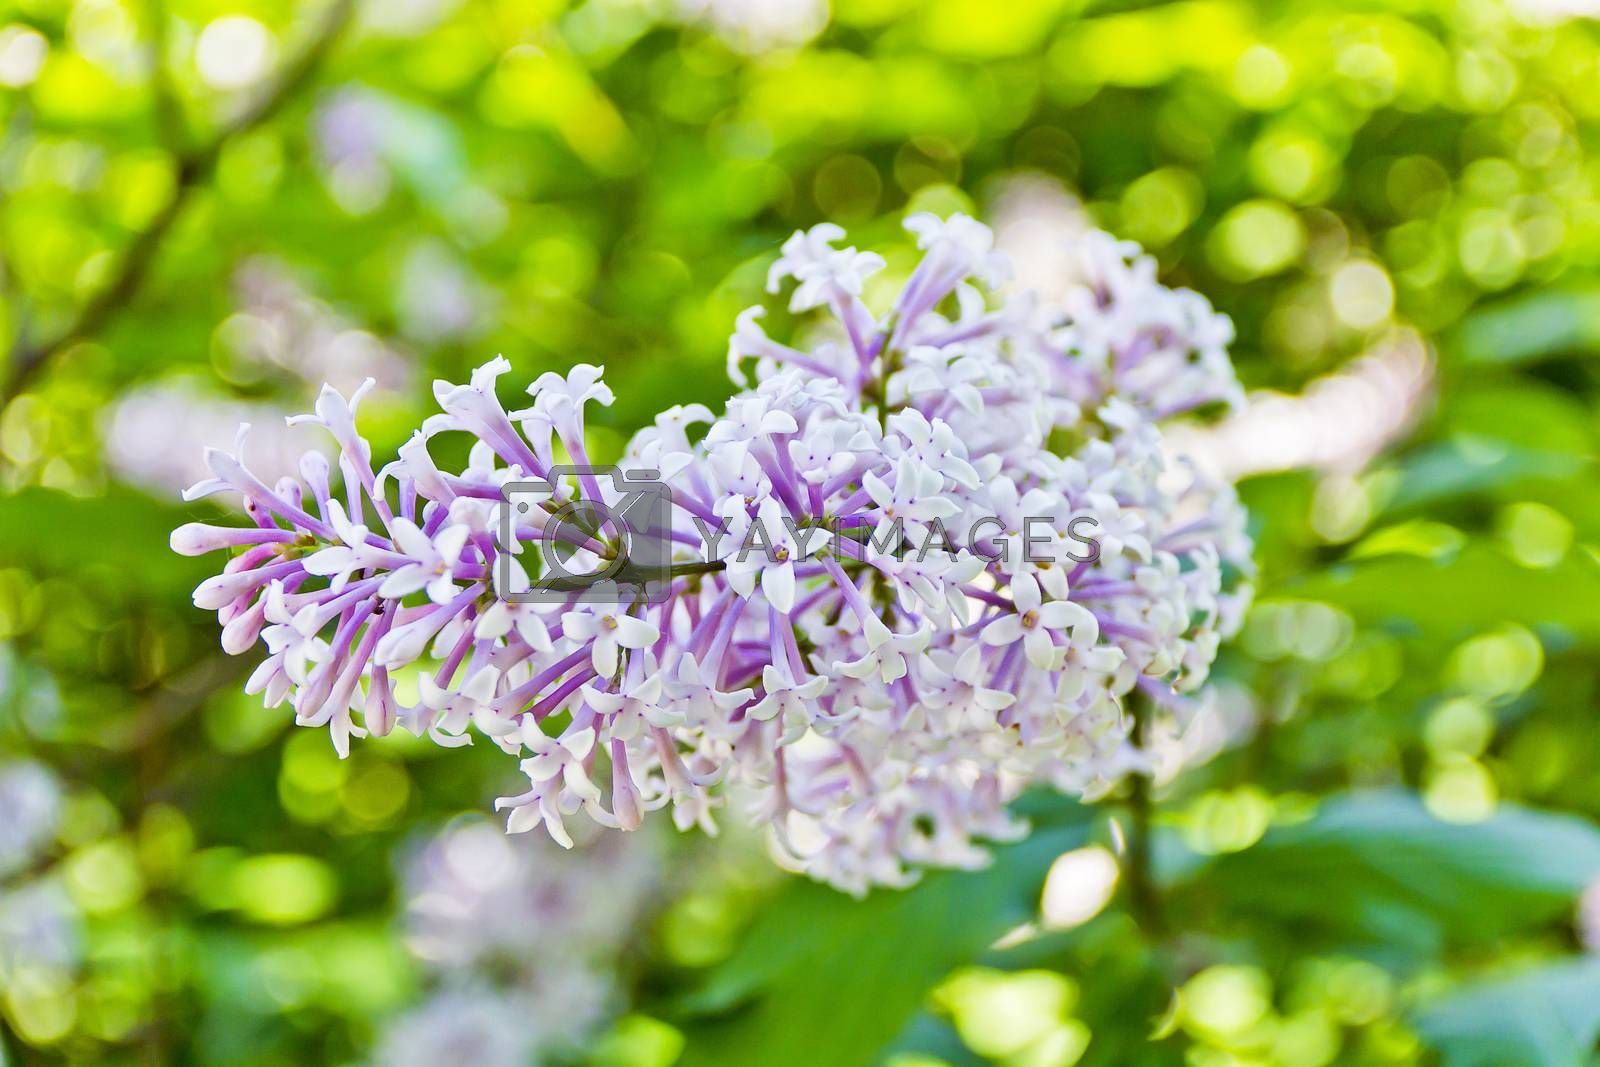 One inflorescence pale purple lilac on green background